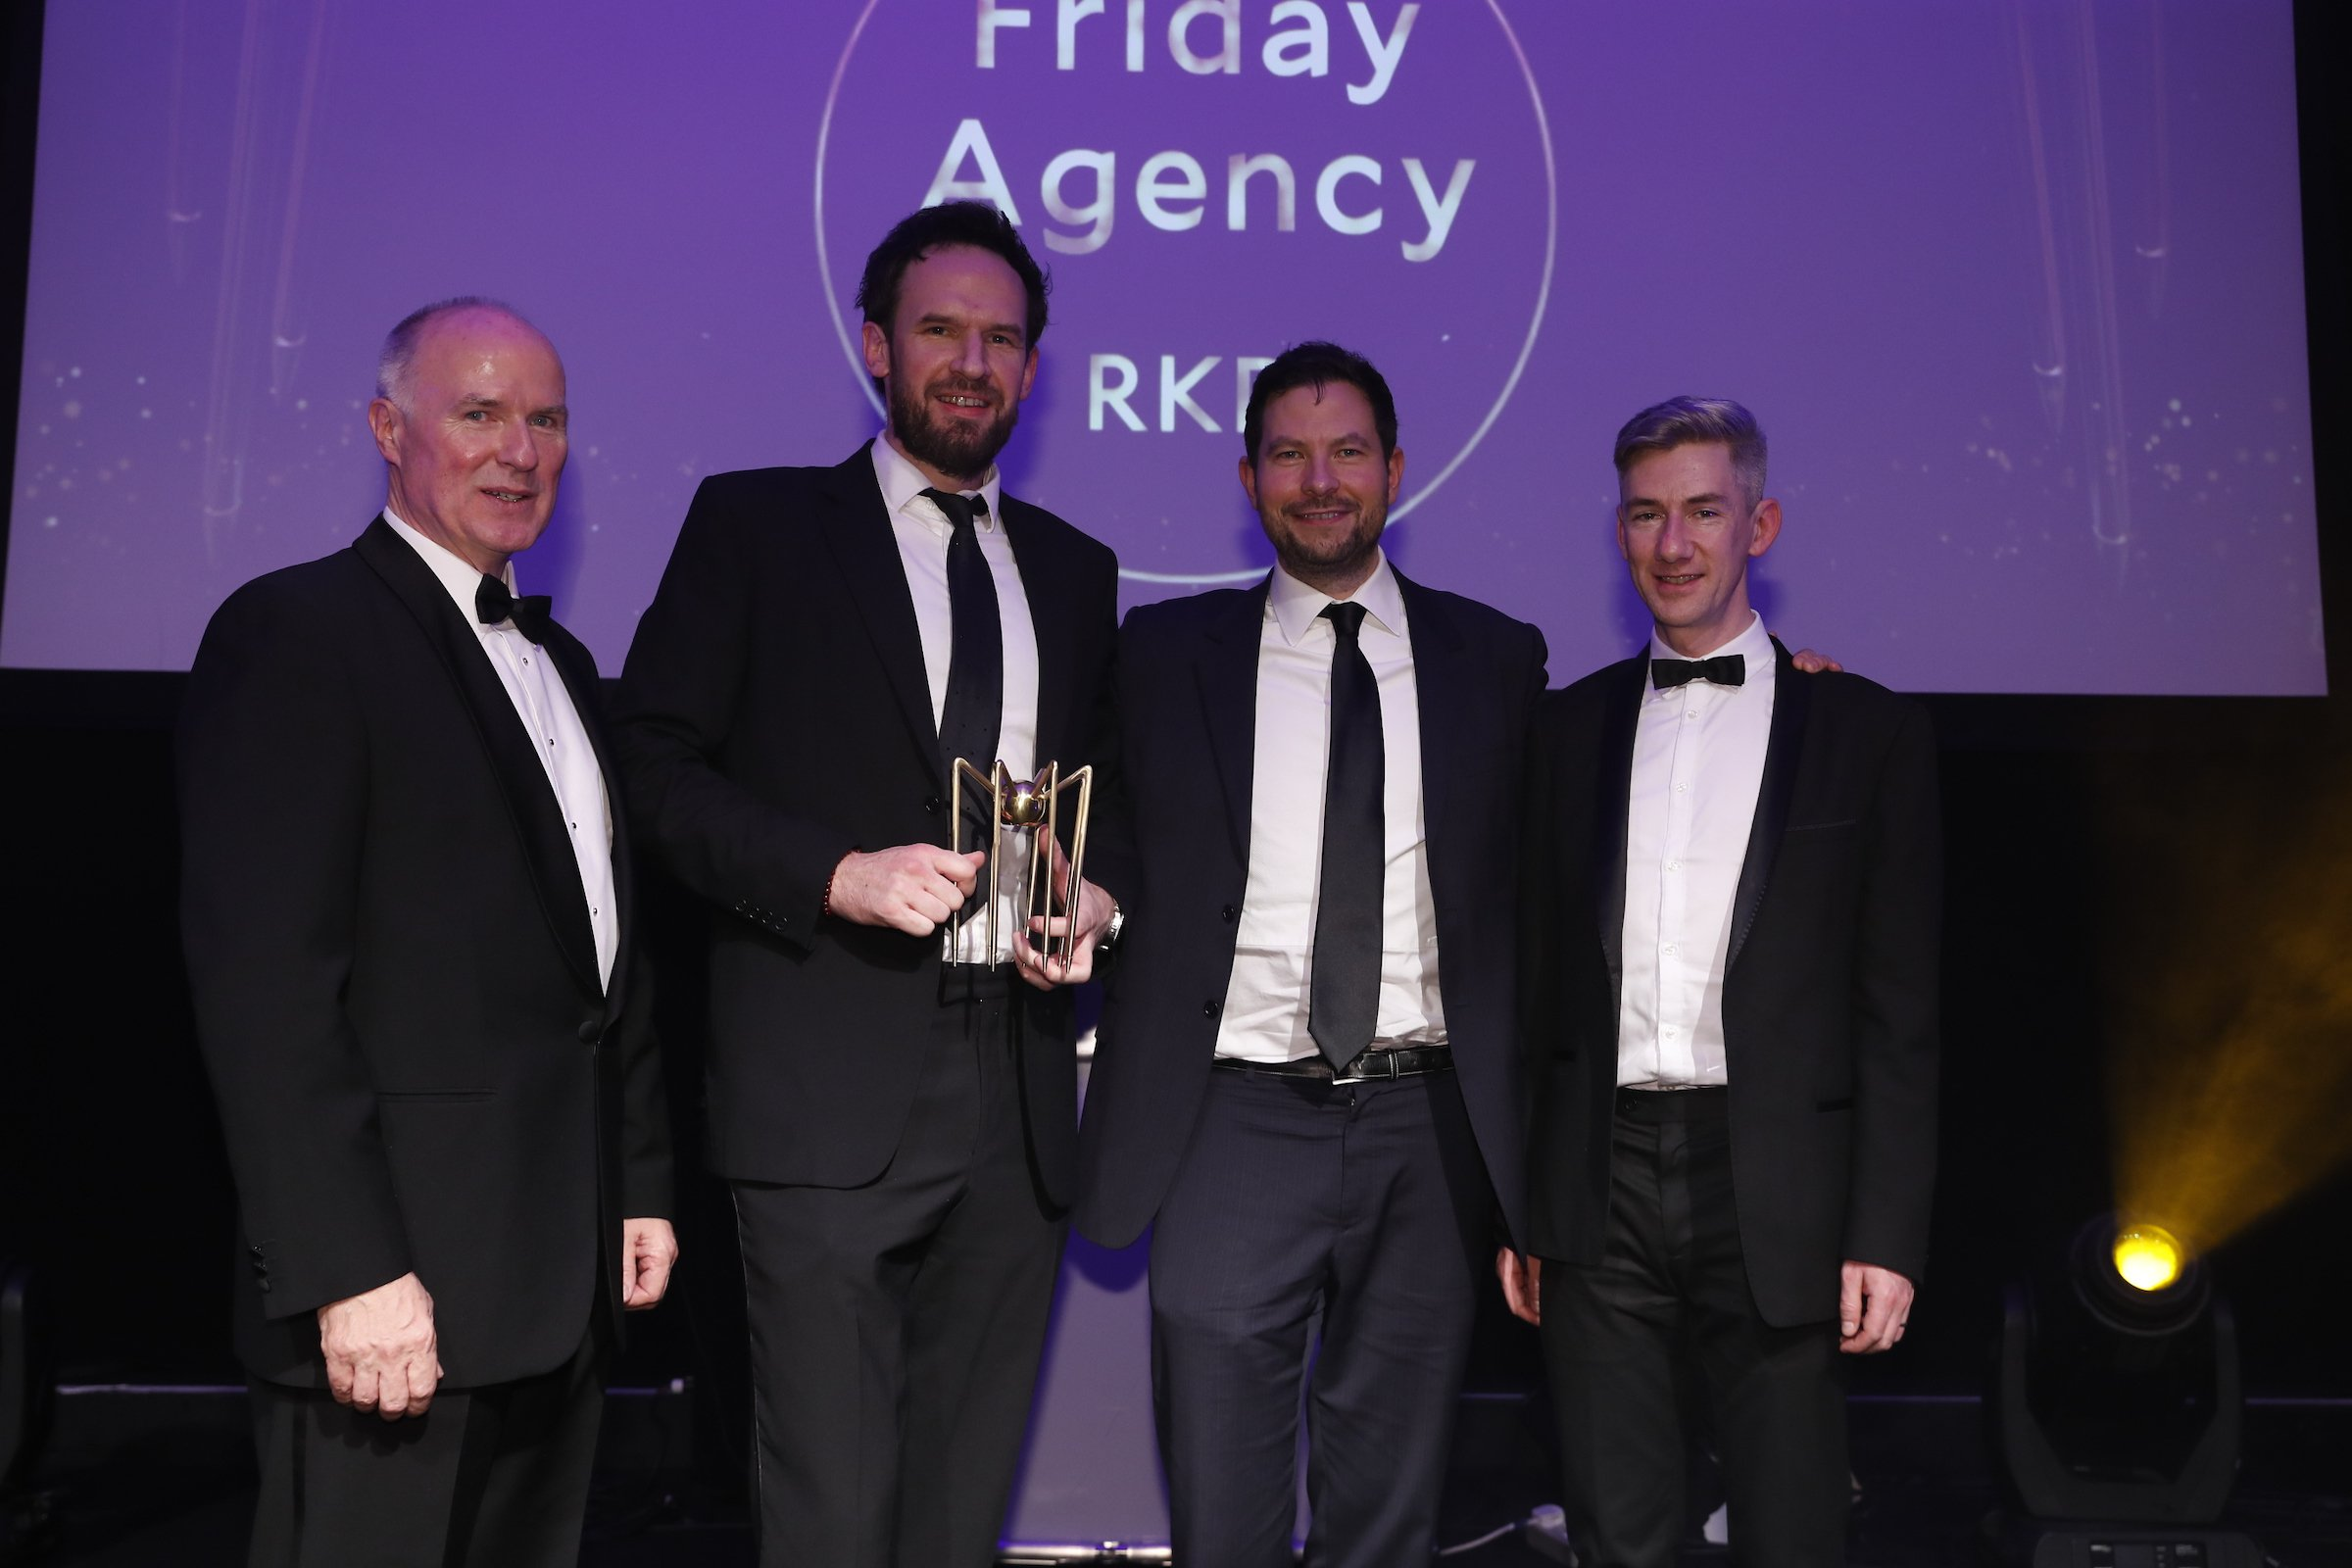 Spiders Awards 2019: David Curtin, CEO, .IE presenting Friday Agency with their award for Best Website